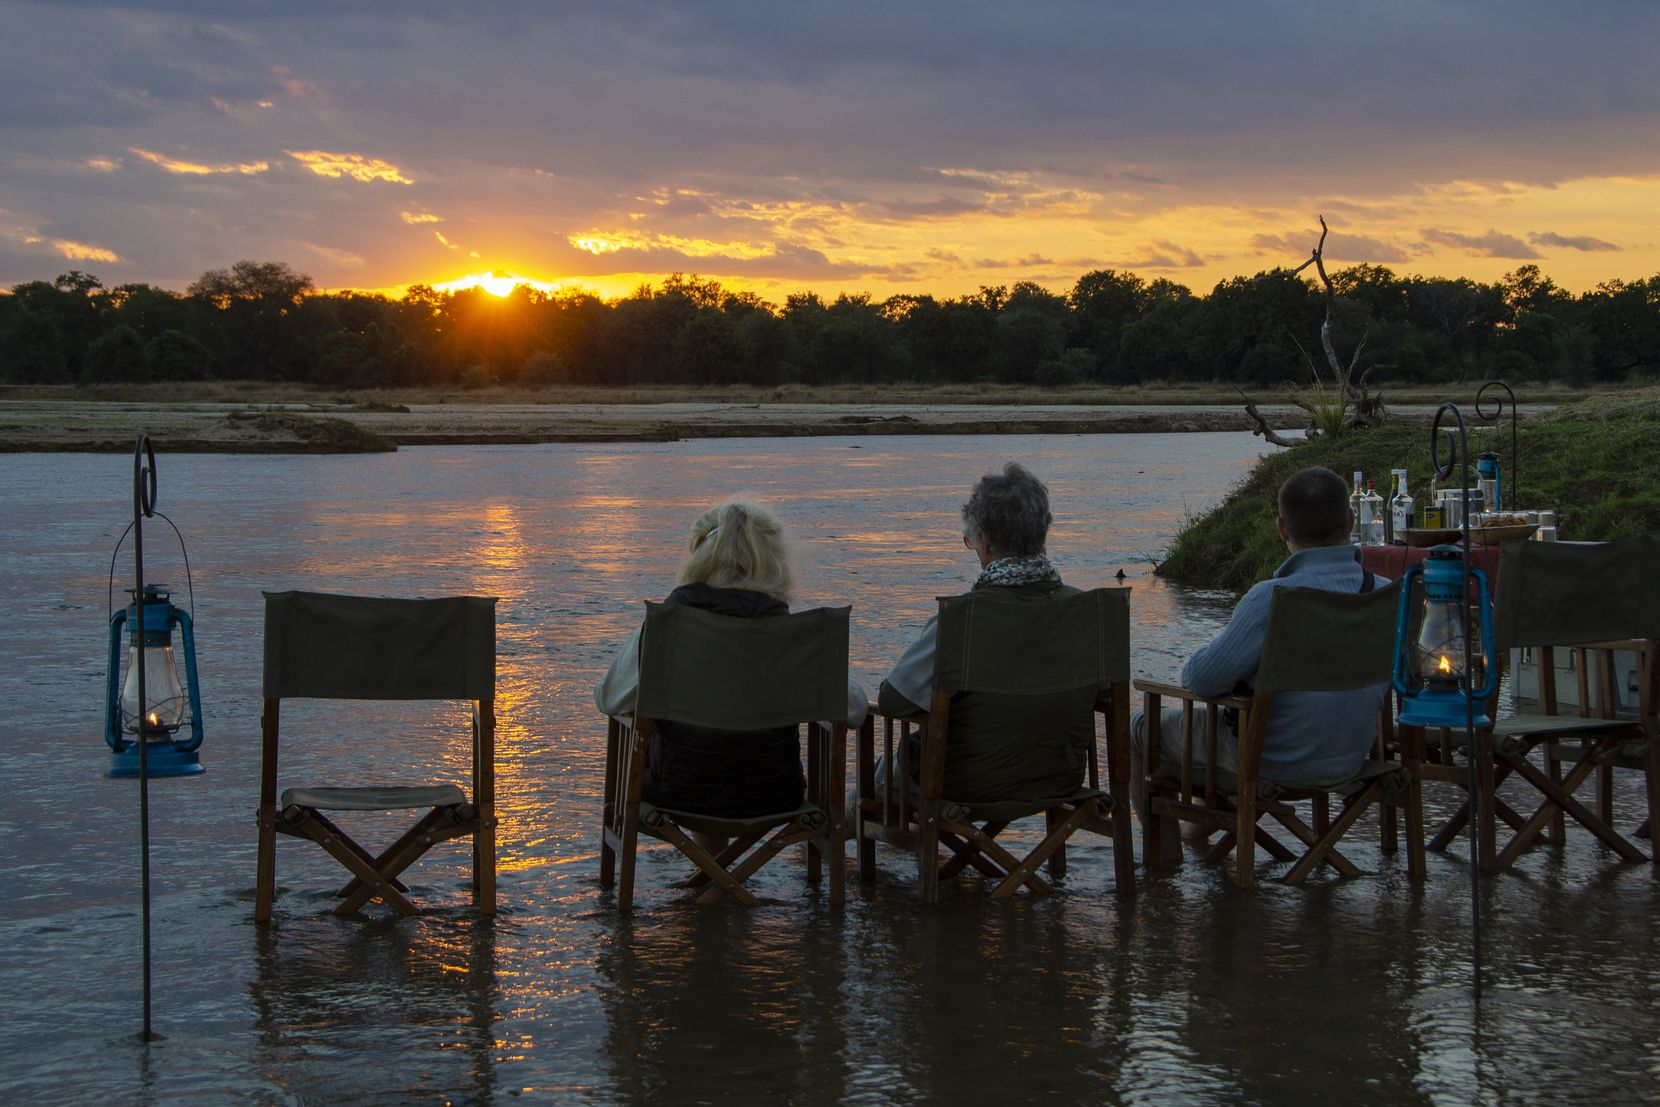 Visitors watch the sunset over the Kapamba River in Zambia's South Luangwa National Park.